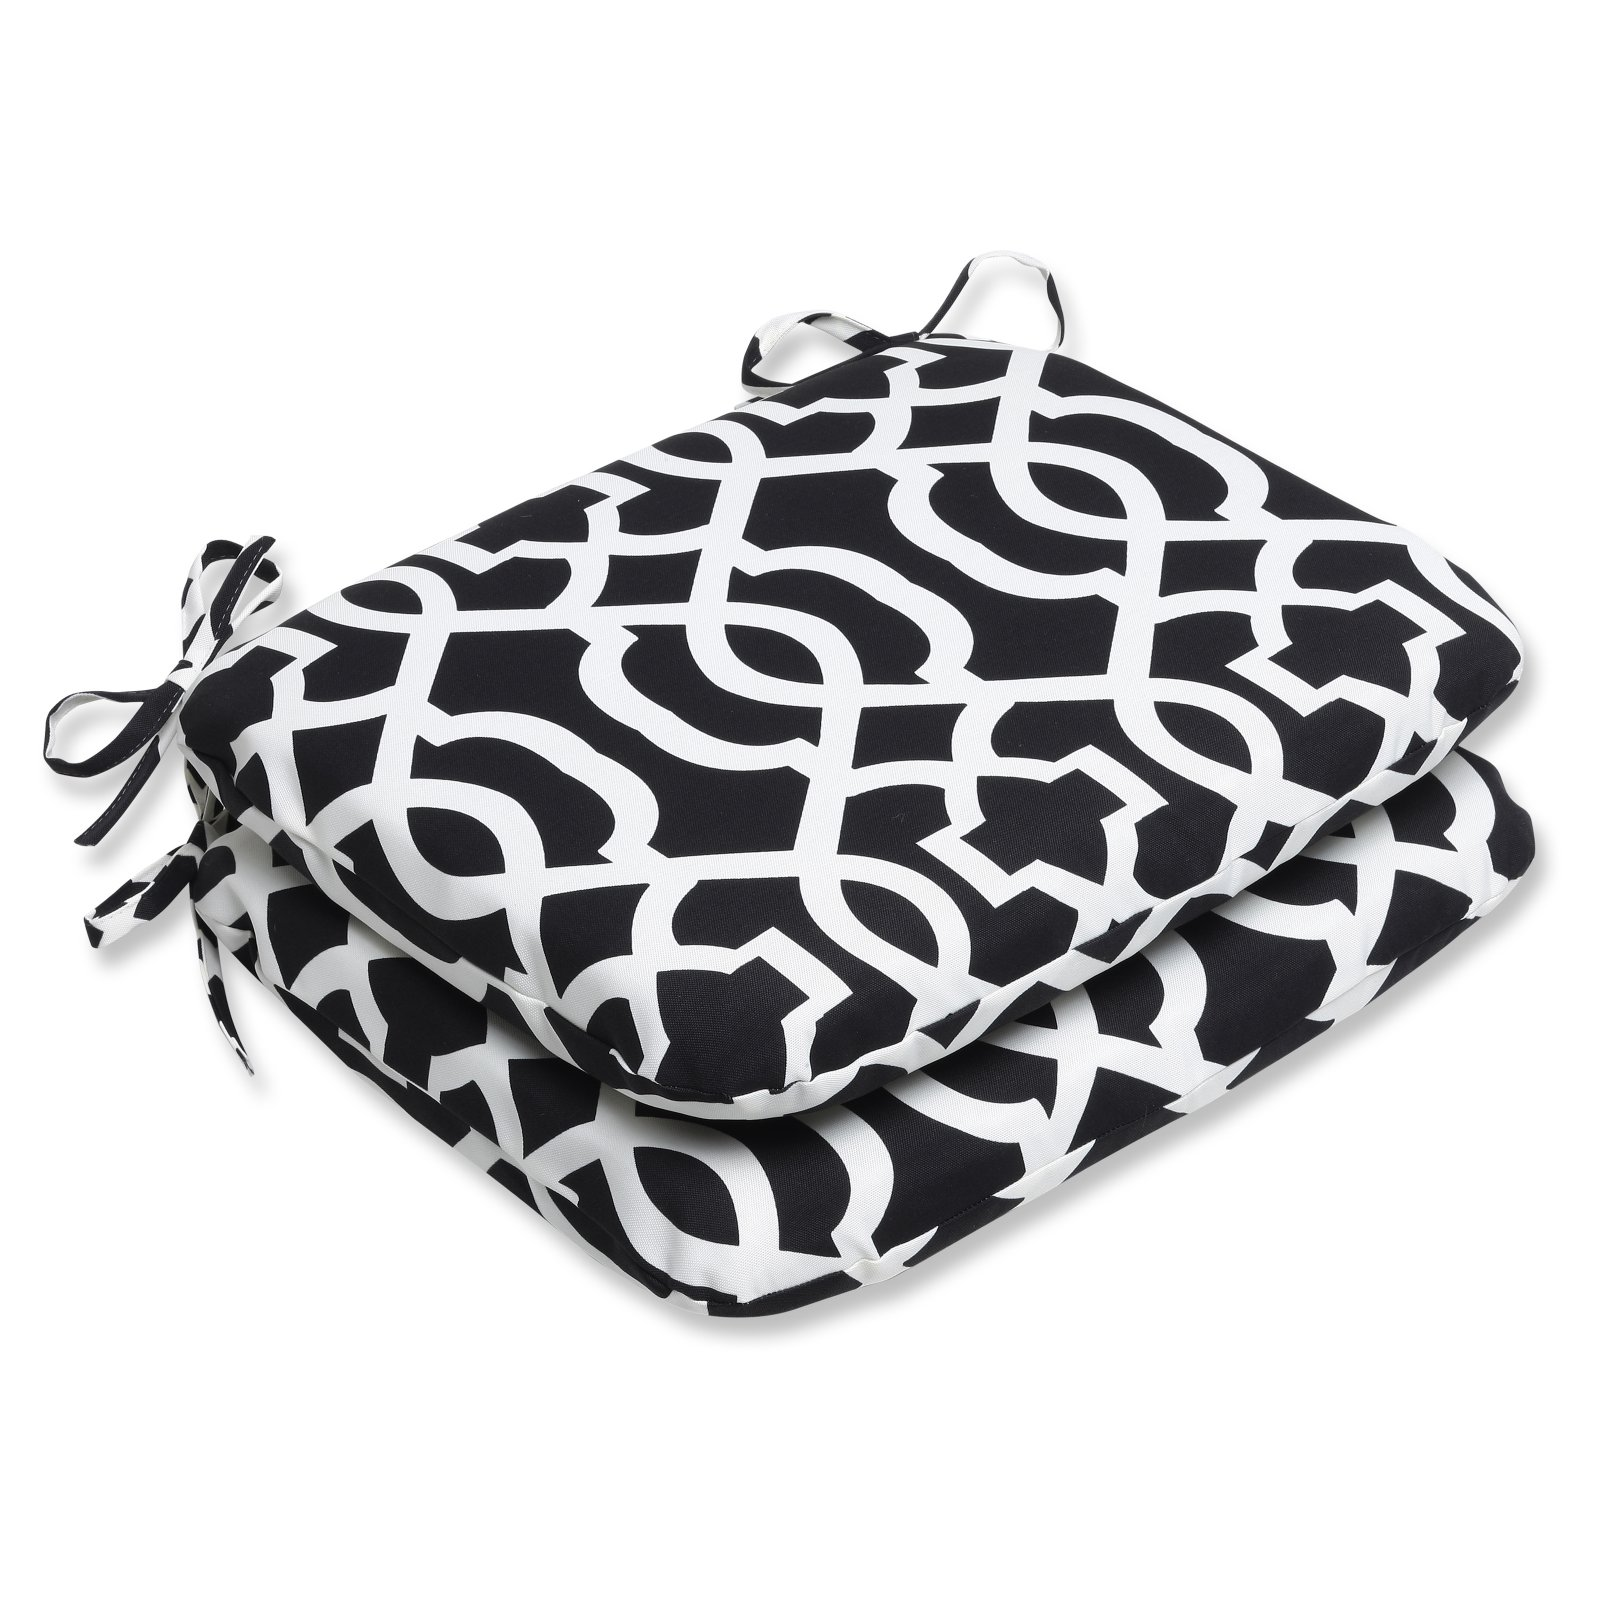 Pillow Perfect Outdoor  Indoor New Geo Black White Rounded Corners Seat Cushion (Set of 2) by Pillow Perfect Inc